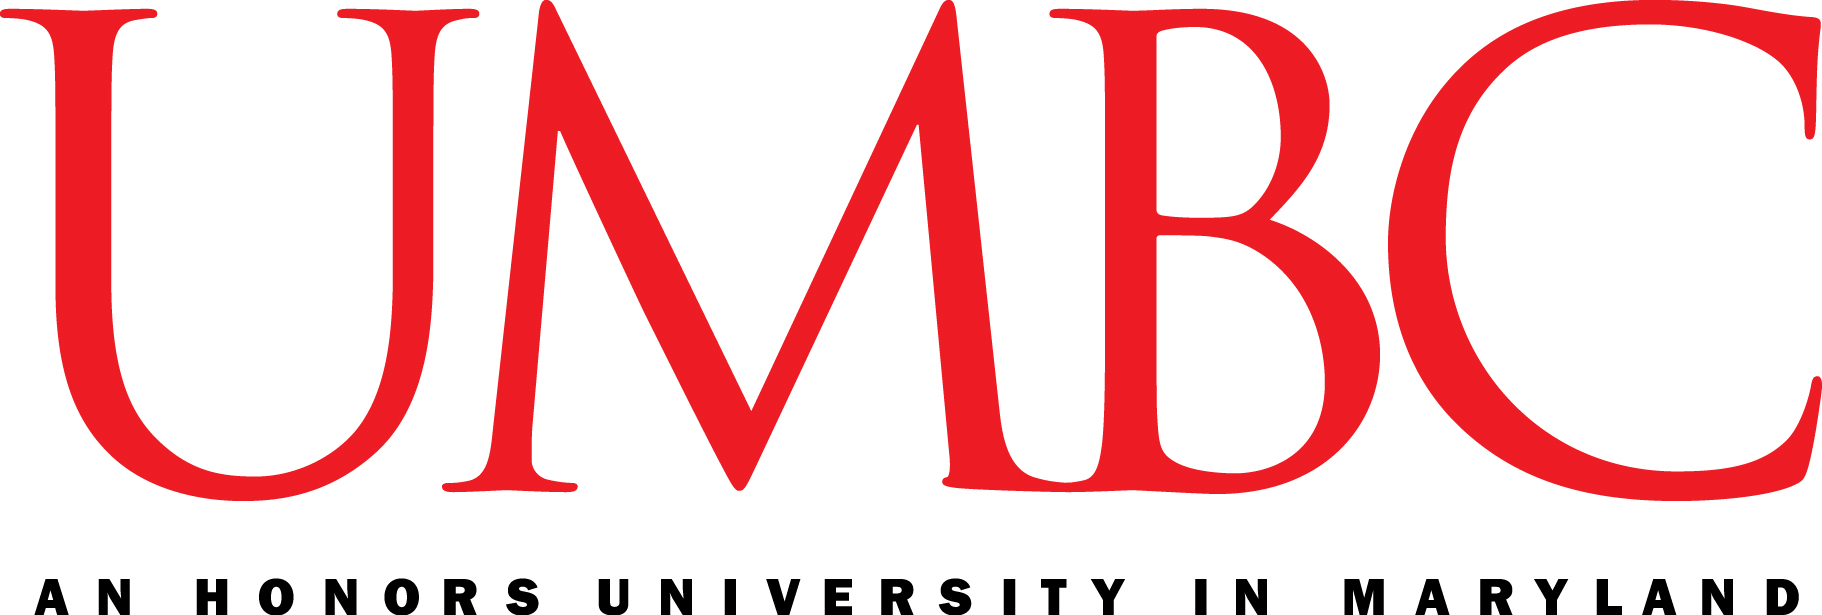 UMBC Online M.S. in Information Systems